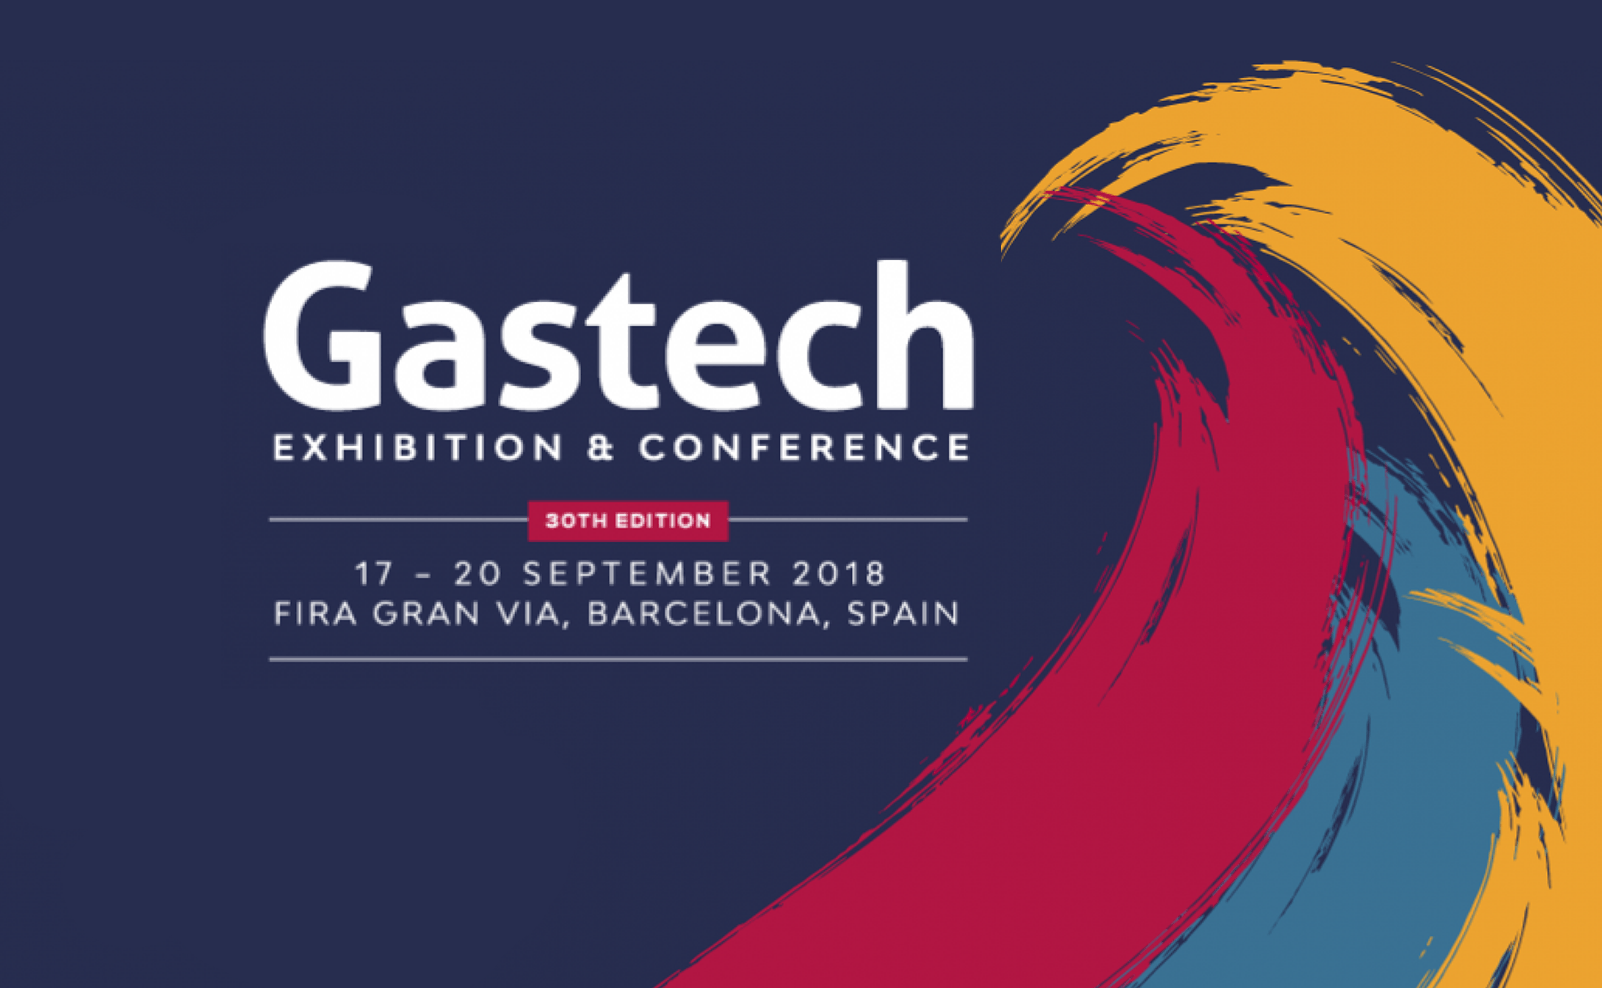 Come and visit BS Stainless at Gastech